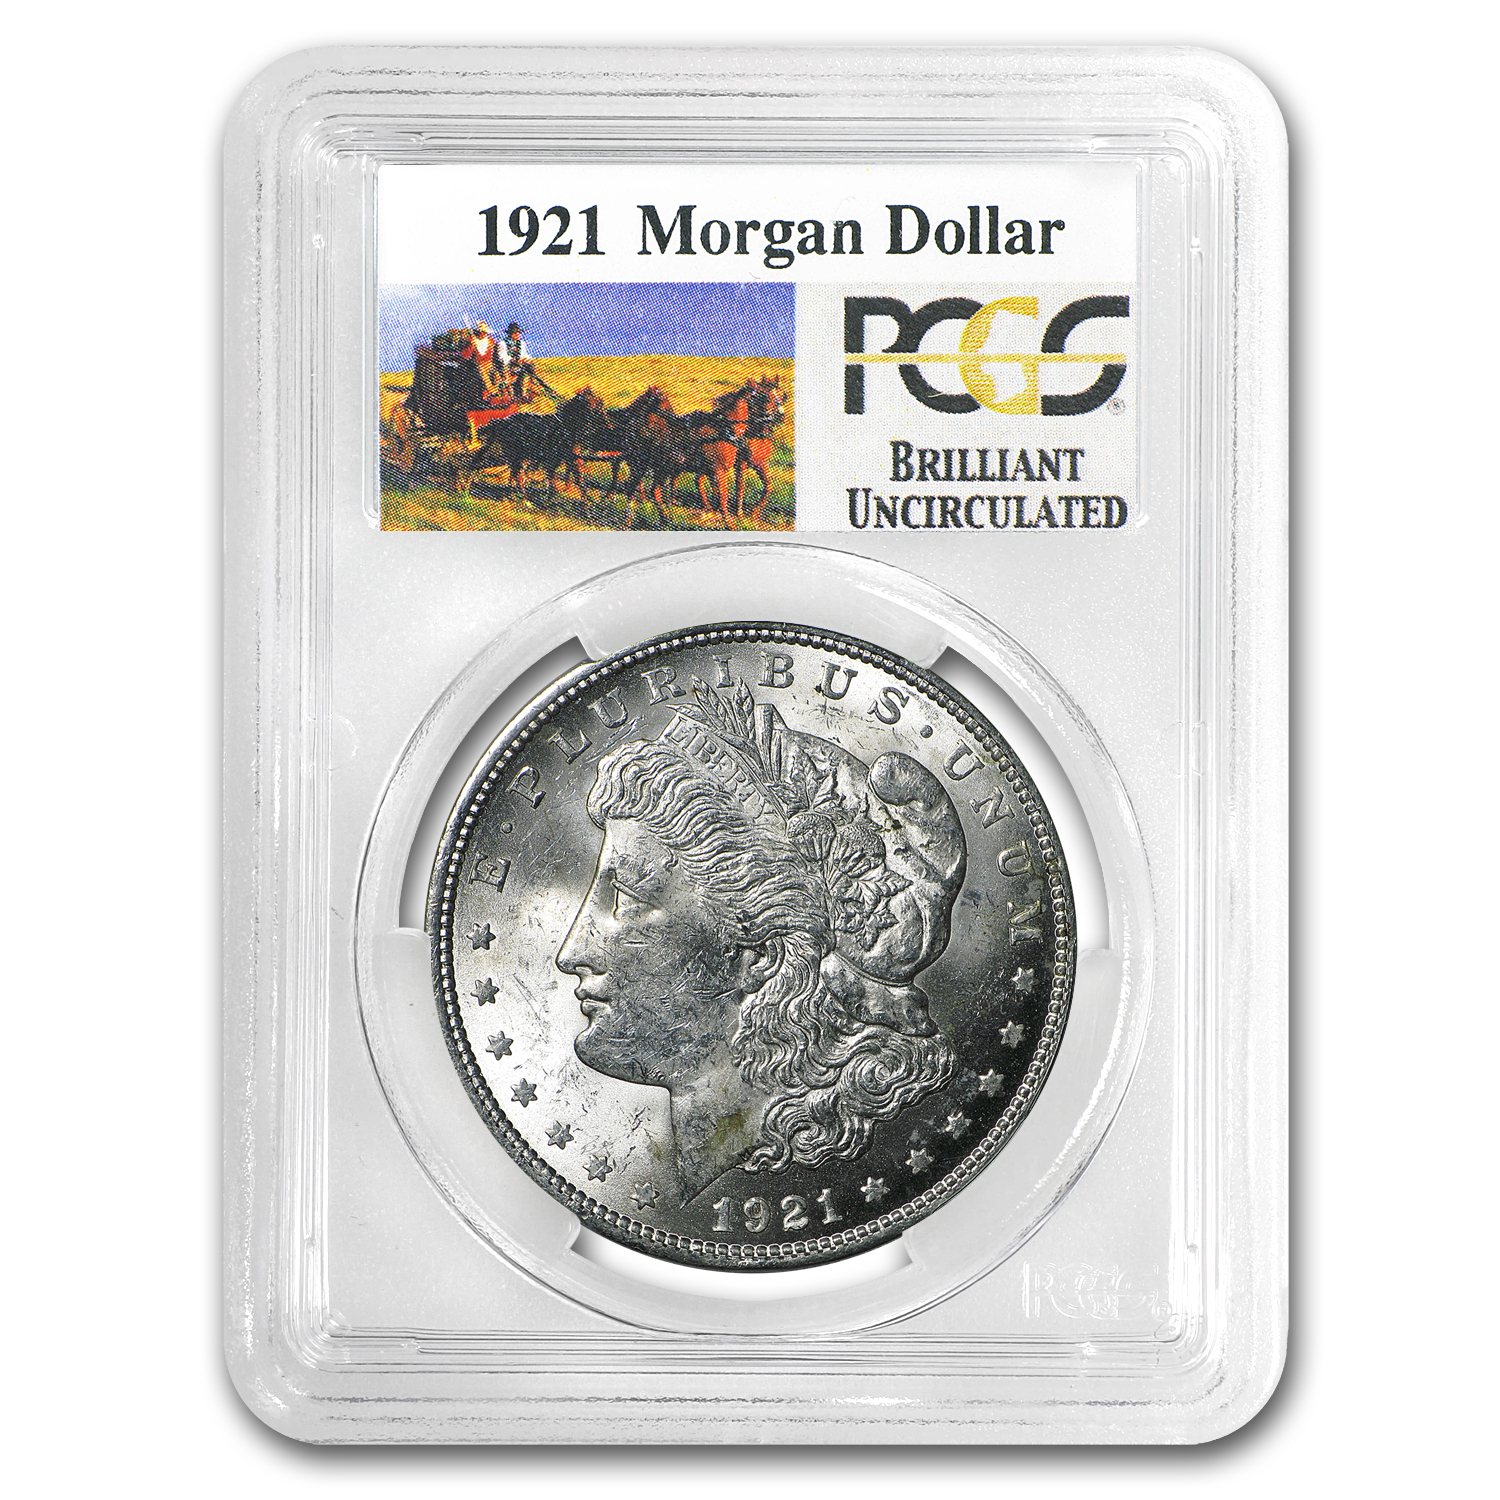 1921 Stage Coach Morgan Dollar BU PCGS